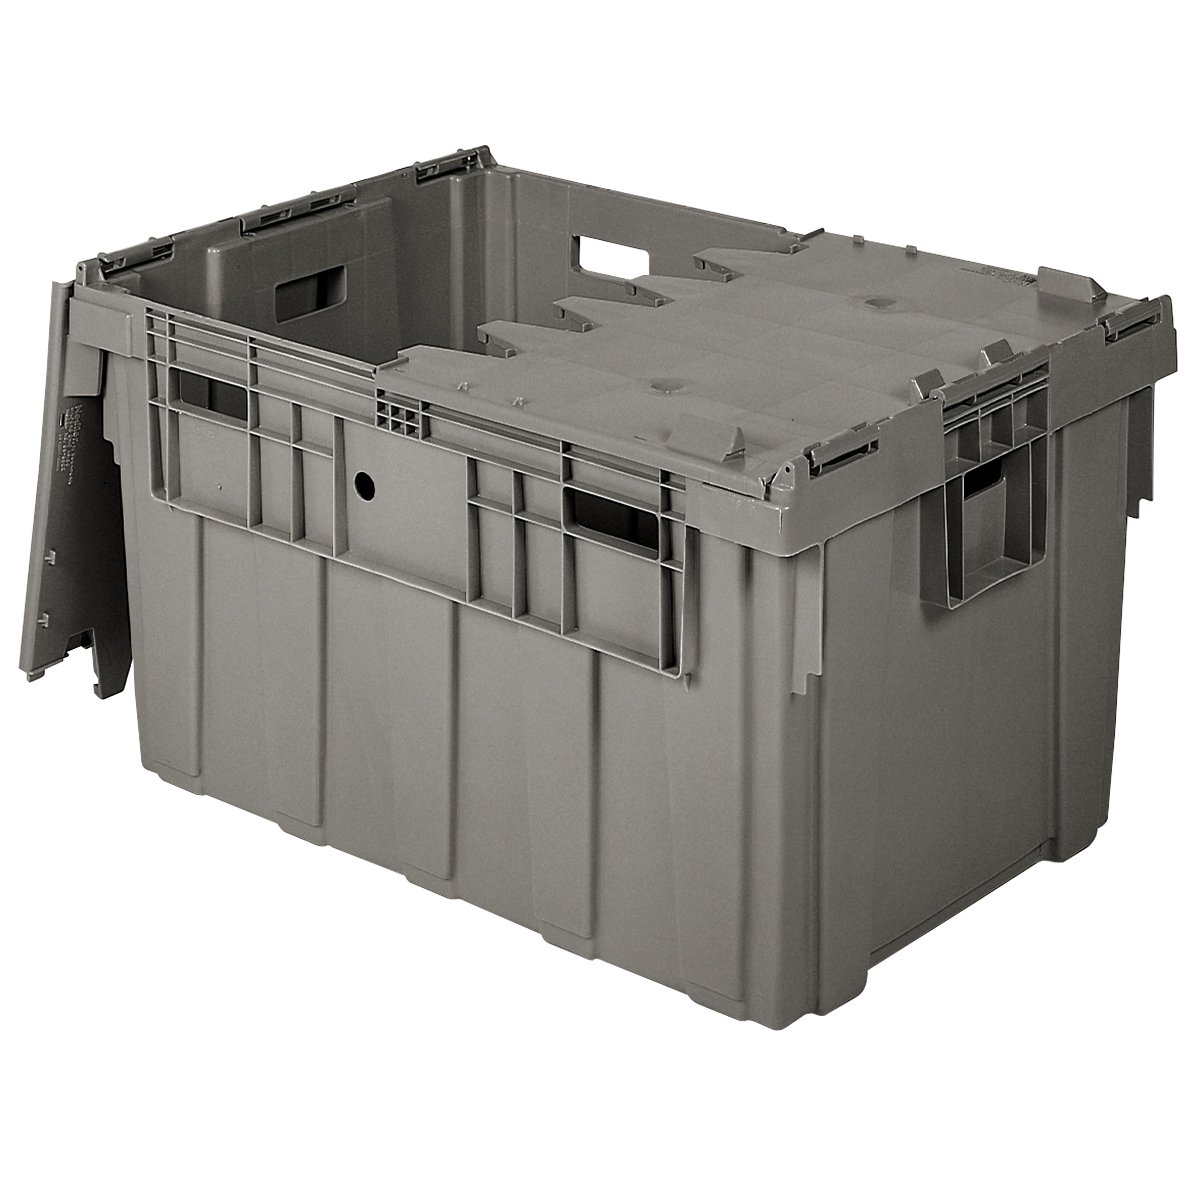 Buckhorn AS3424201201000 Attached Lid Flip Top Storage and Distribution  Plastic Tote, 34-Inch x 24-Inch x 20-Inch, Grey